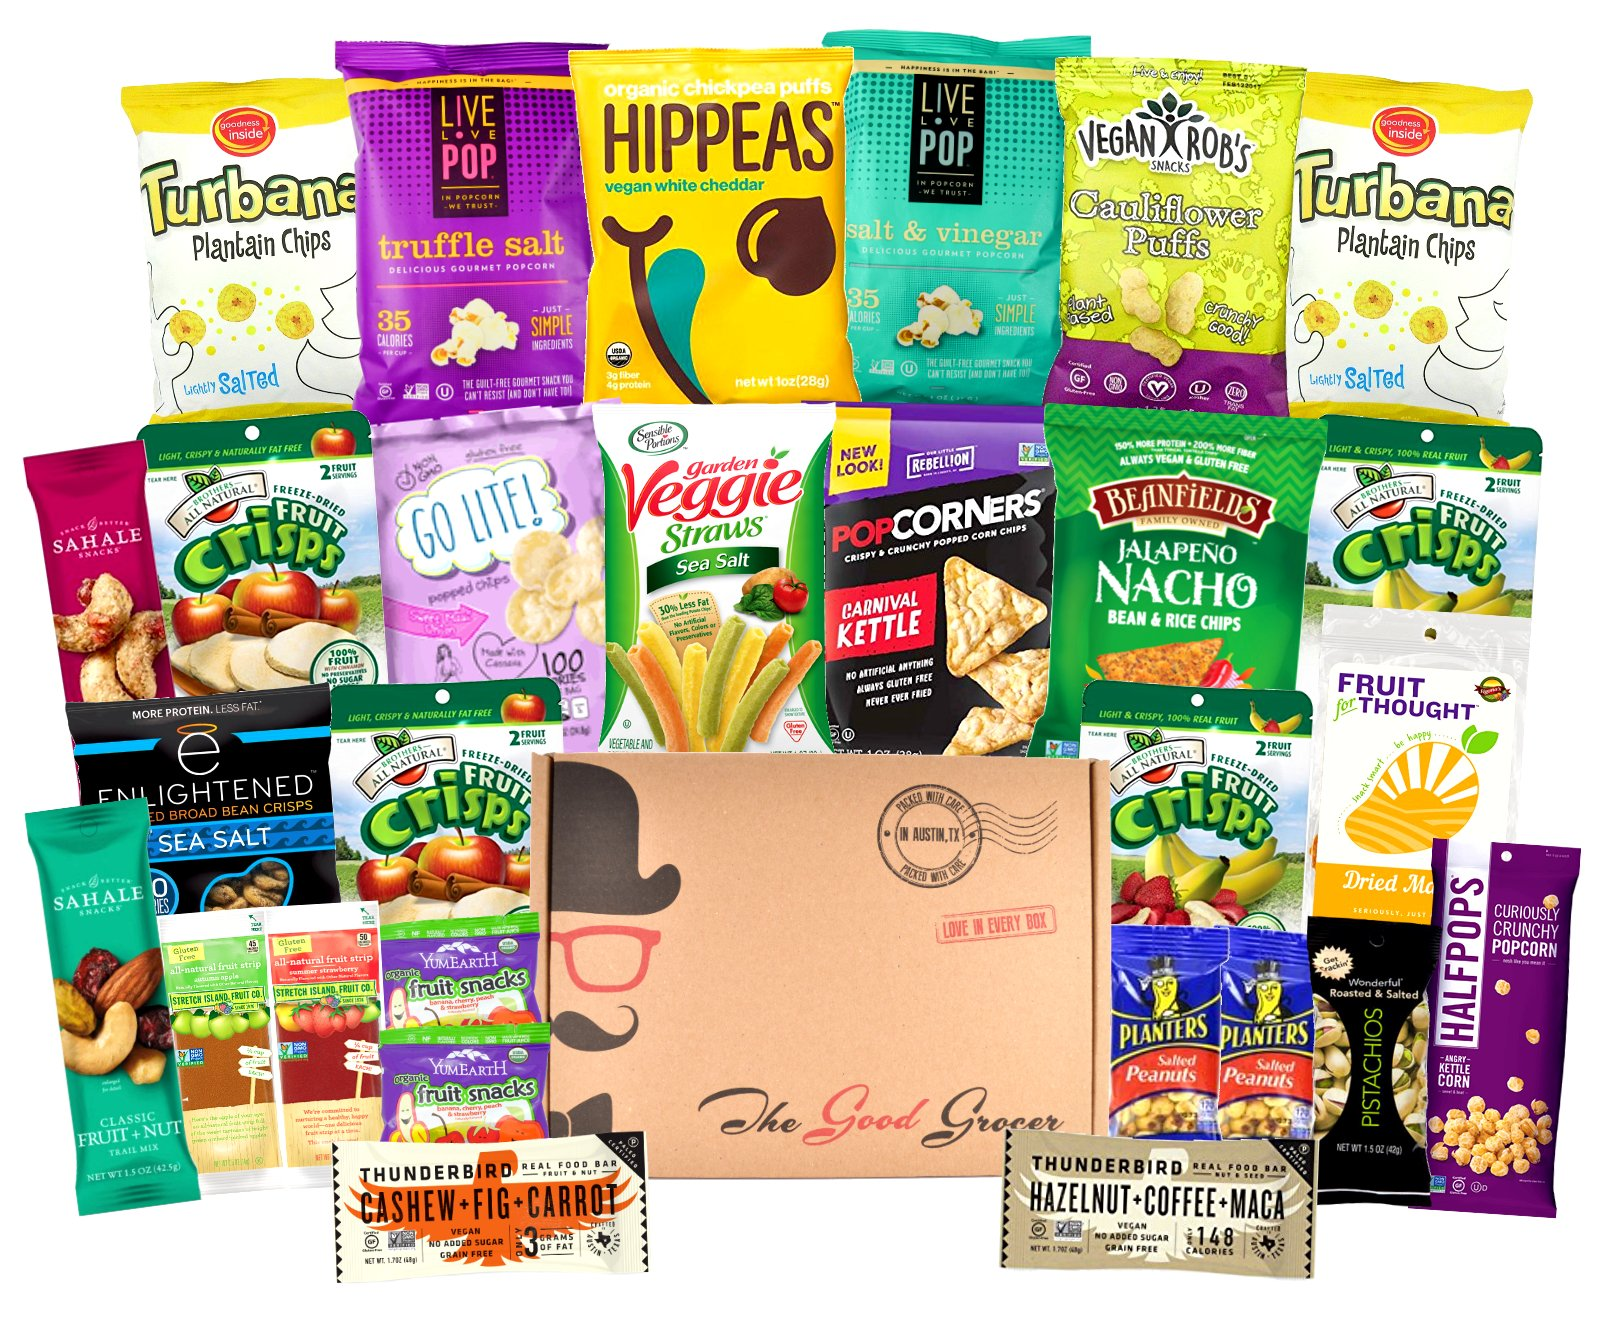 GLUTEN FREE and VEGAN Healthy Snacks Care Package (28 Ct): Plant-Based Snacks, Bars, Chips, Crispy Fruit, Nuts Trail Mix, Gift Box Sampler, Office Variety, College Student Care Package, Gift Basket by The Good Grocer